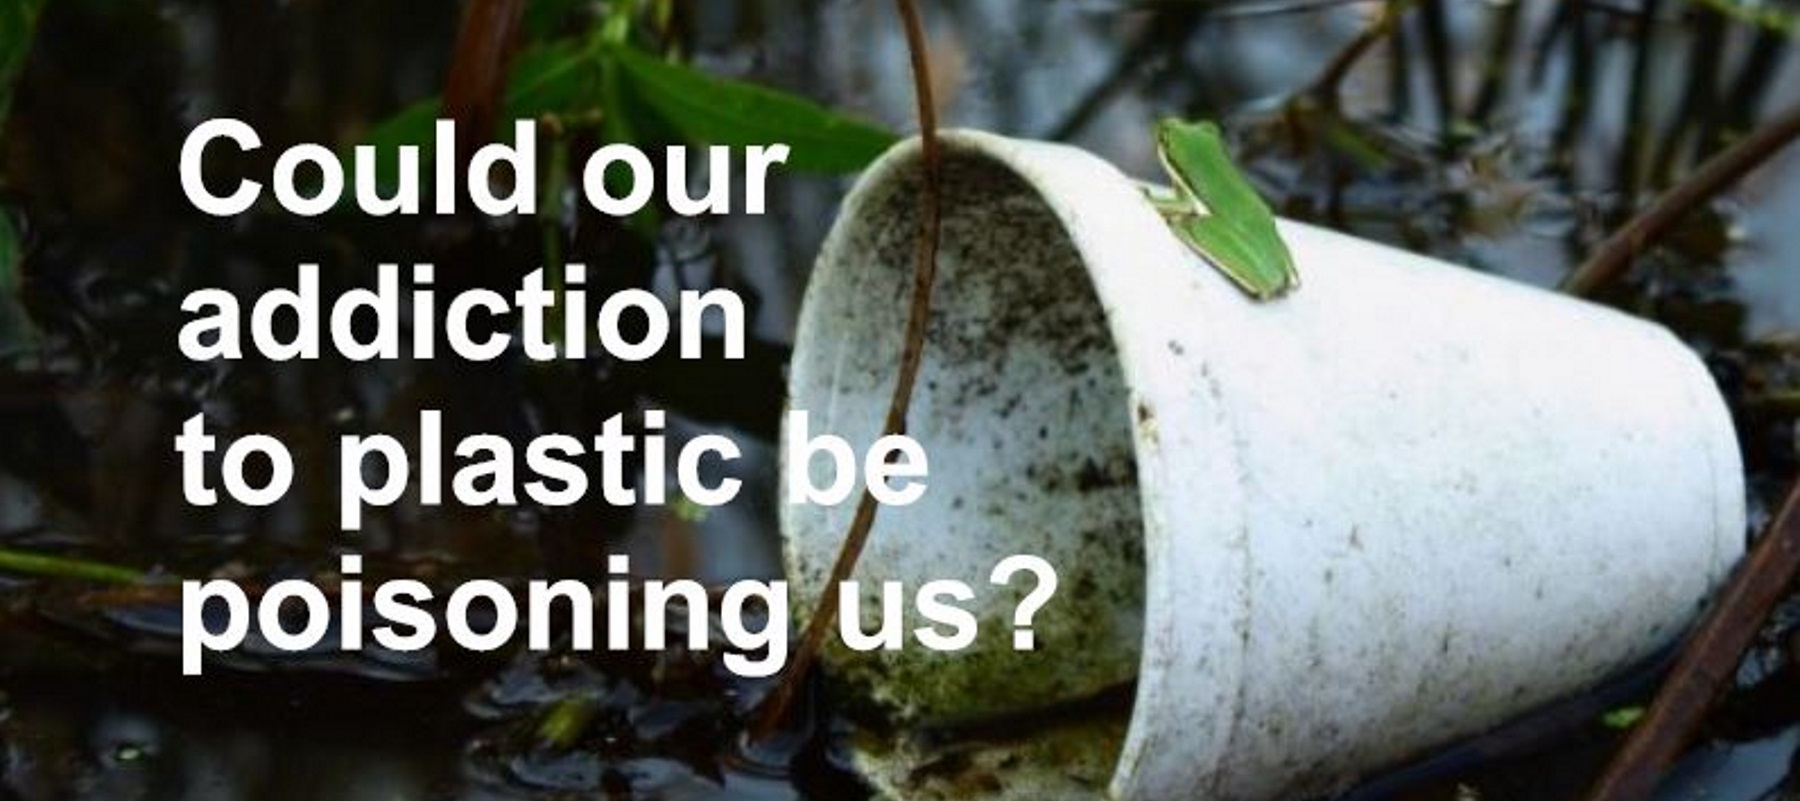 Could our addiction to plastic be poisoning us